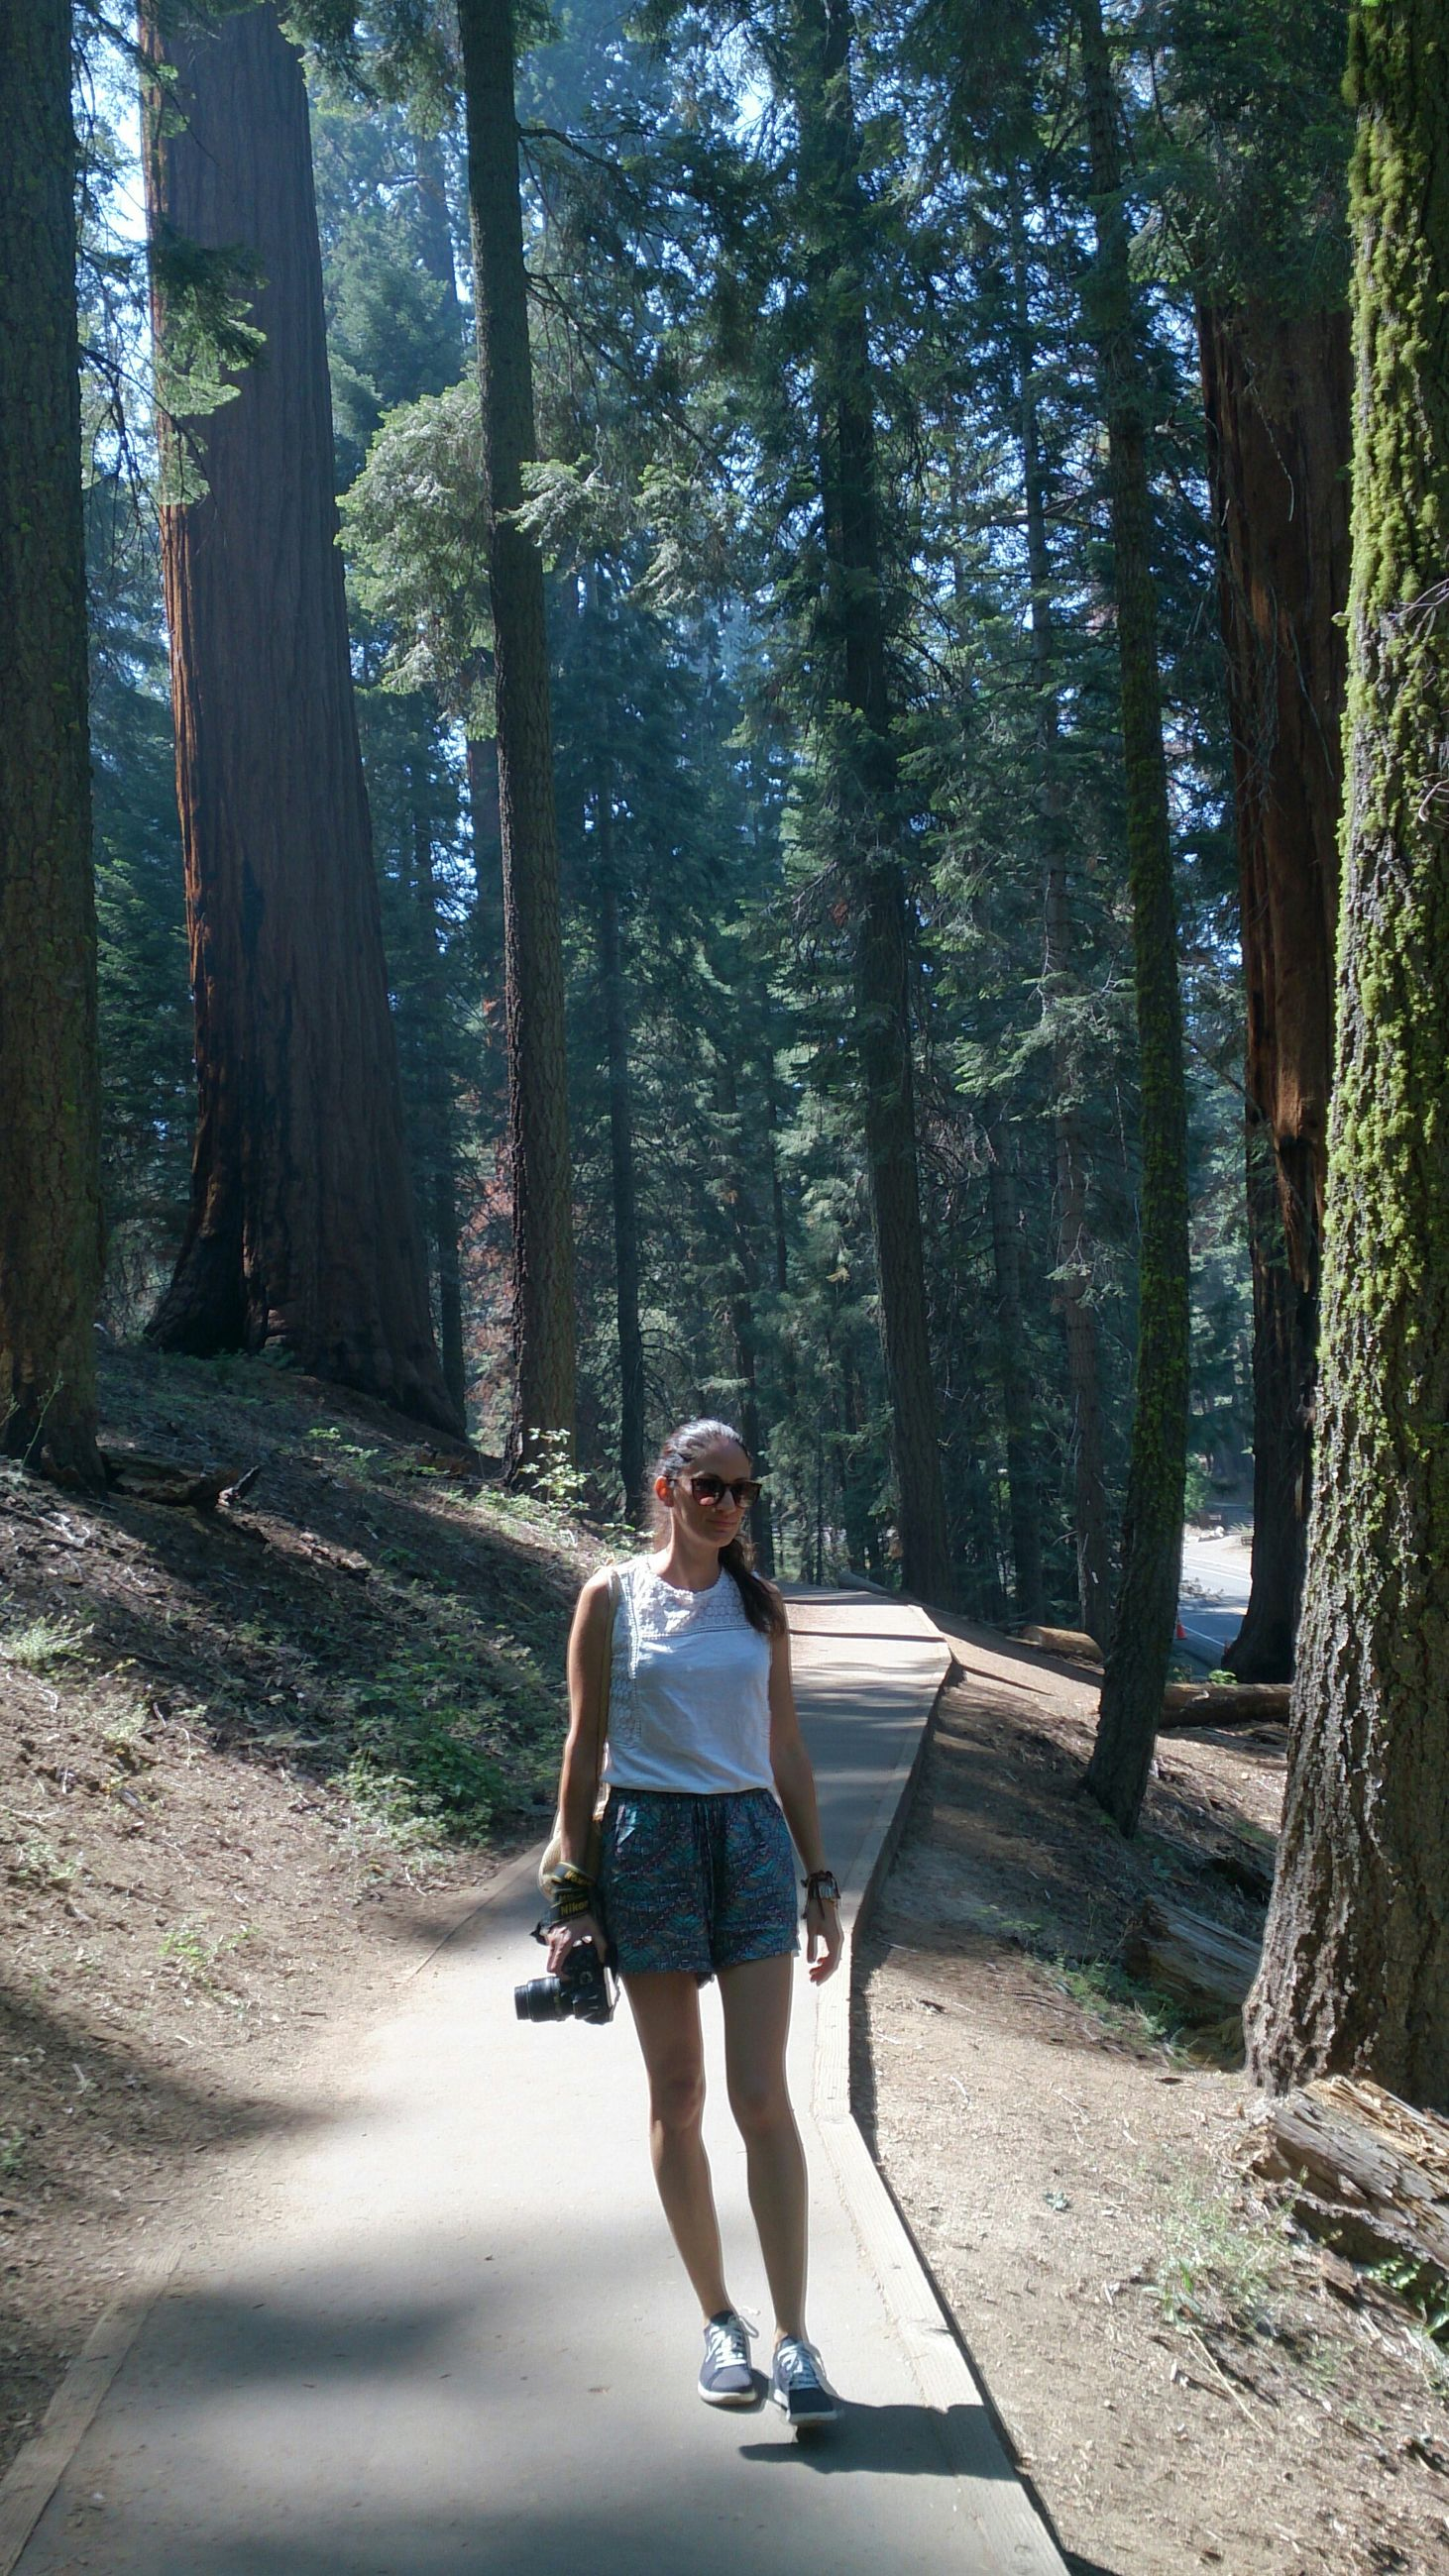 full length, tree, casual clothing, lifestyles, person, leisure activity, young adult, forest, looking at camera, front view, standing, tree trunk, young women, portrait, the way forward, walking, day, smiling